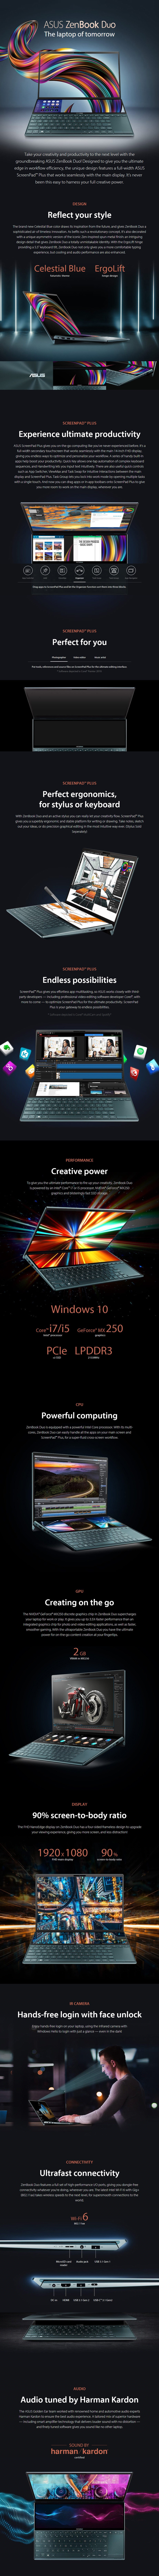 """A large marketing image providing additional information about the product ASUS ZenBook Duo UX481FL 14"""" i5 Gen10 MX250 Celestial Blue Windows 10 Ultrabook - Additional alt info not provided"""